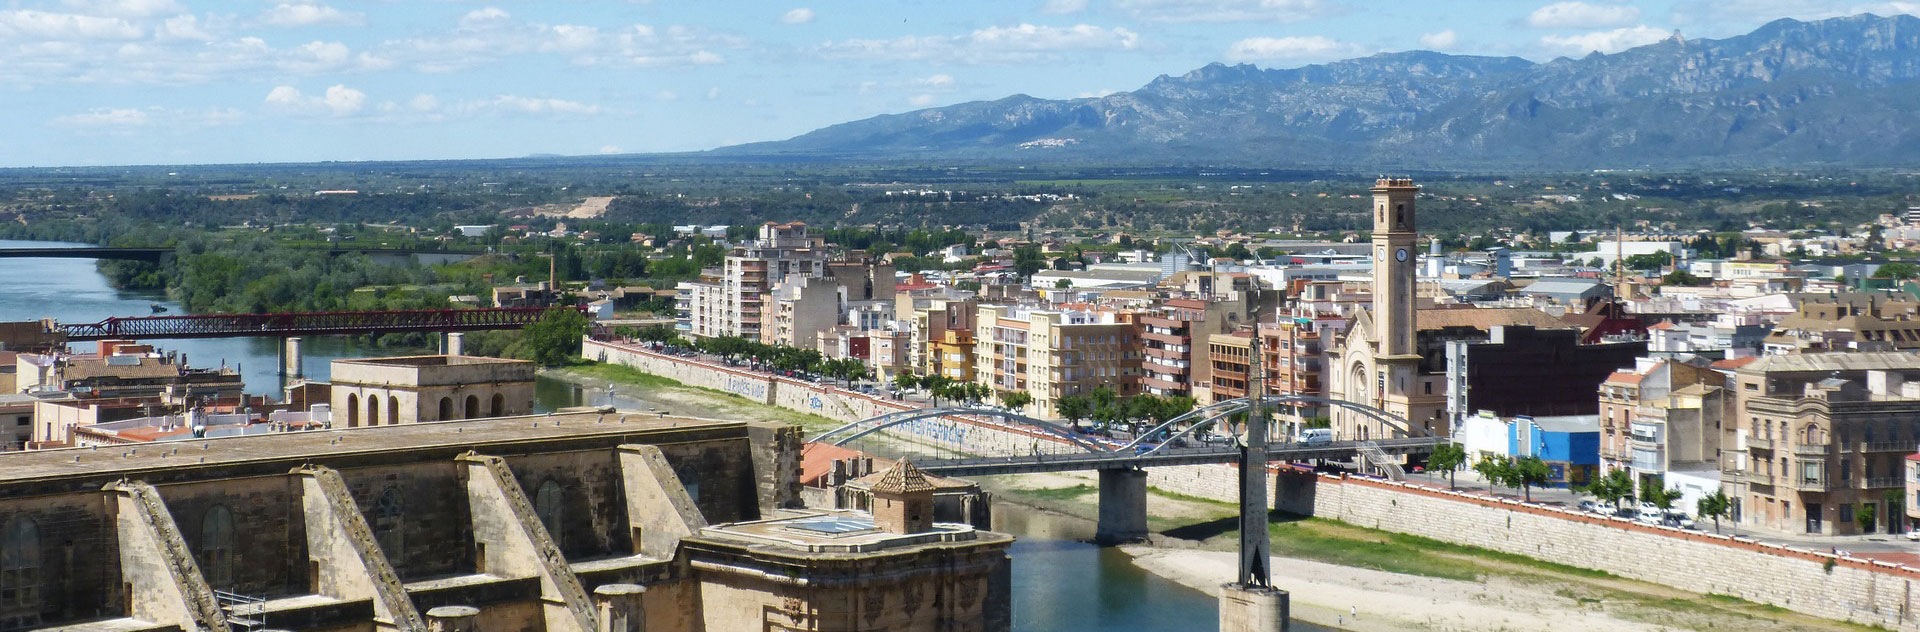 Real Estate Rieres for sale and rental of apartments, houses, townhouses, Tortosa. Rental of houses and flats in Tortosa. Buy flats in Tortosa. Homes for sale in Tortosa.